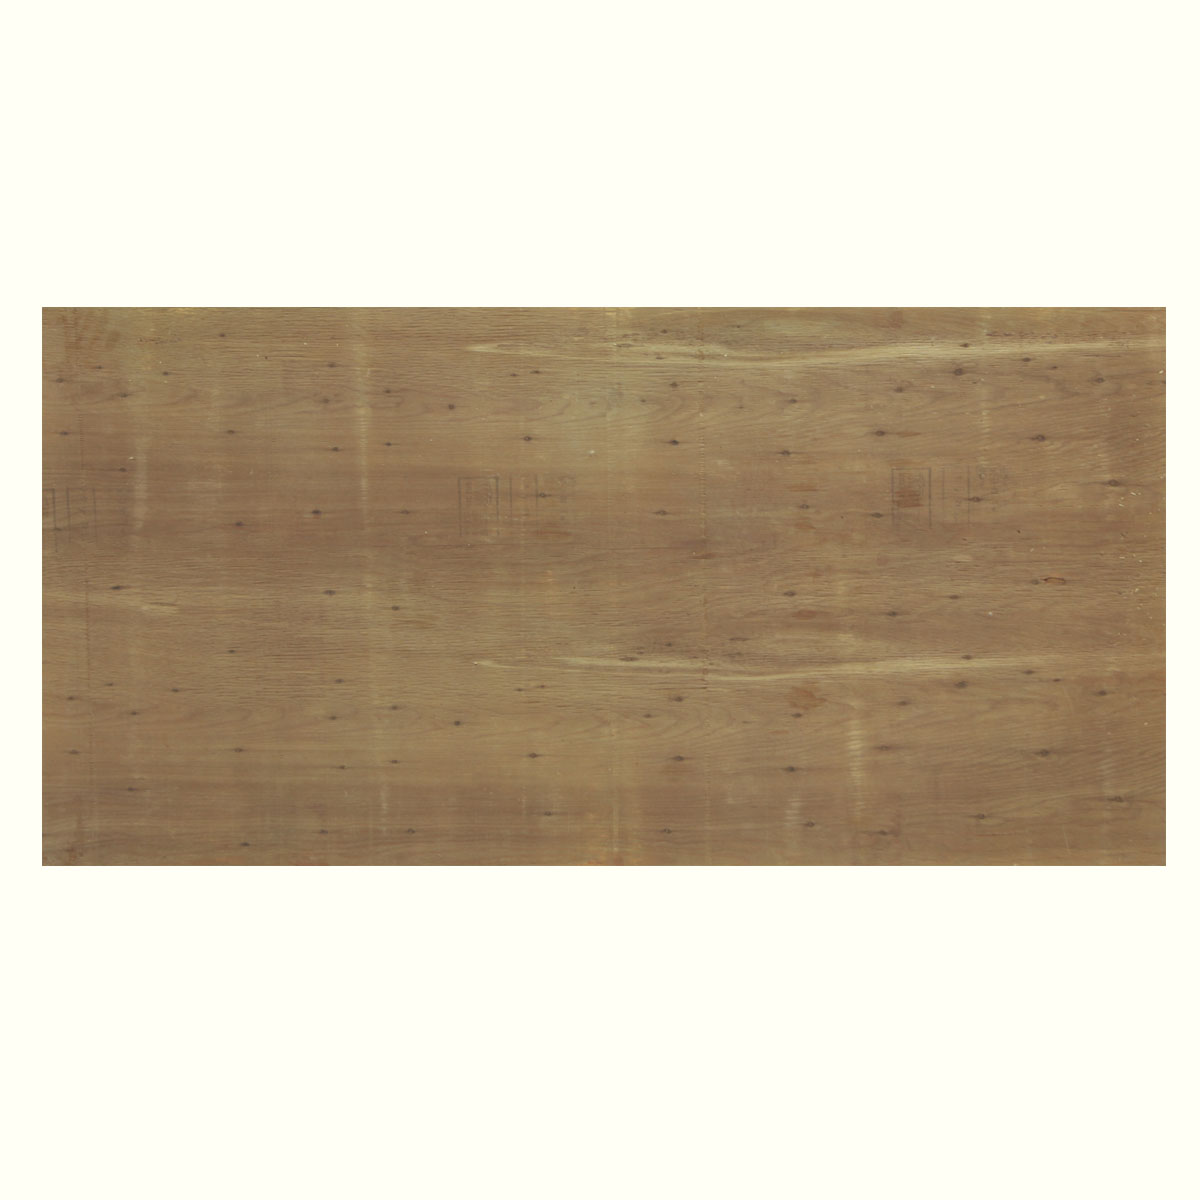 CCA Treated Plywood - 4 x 8 - 9.5 mm - 3/8-in